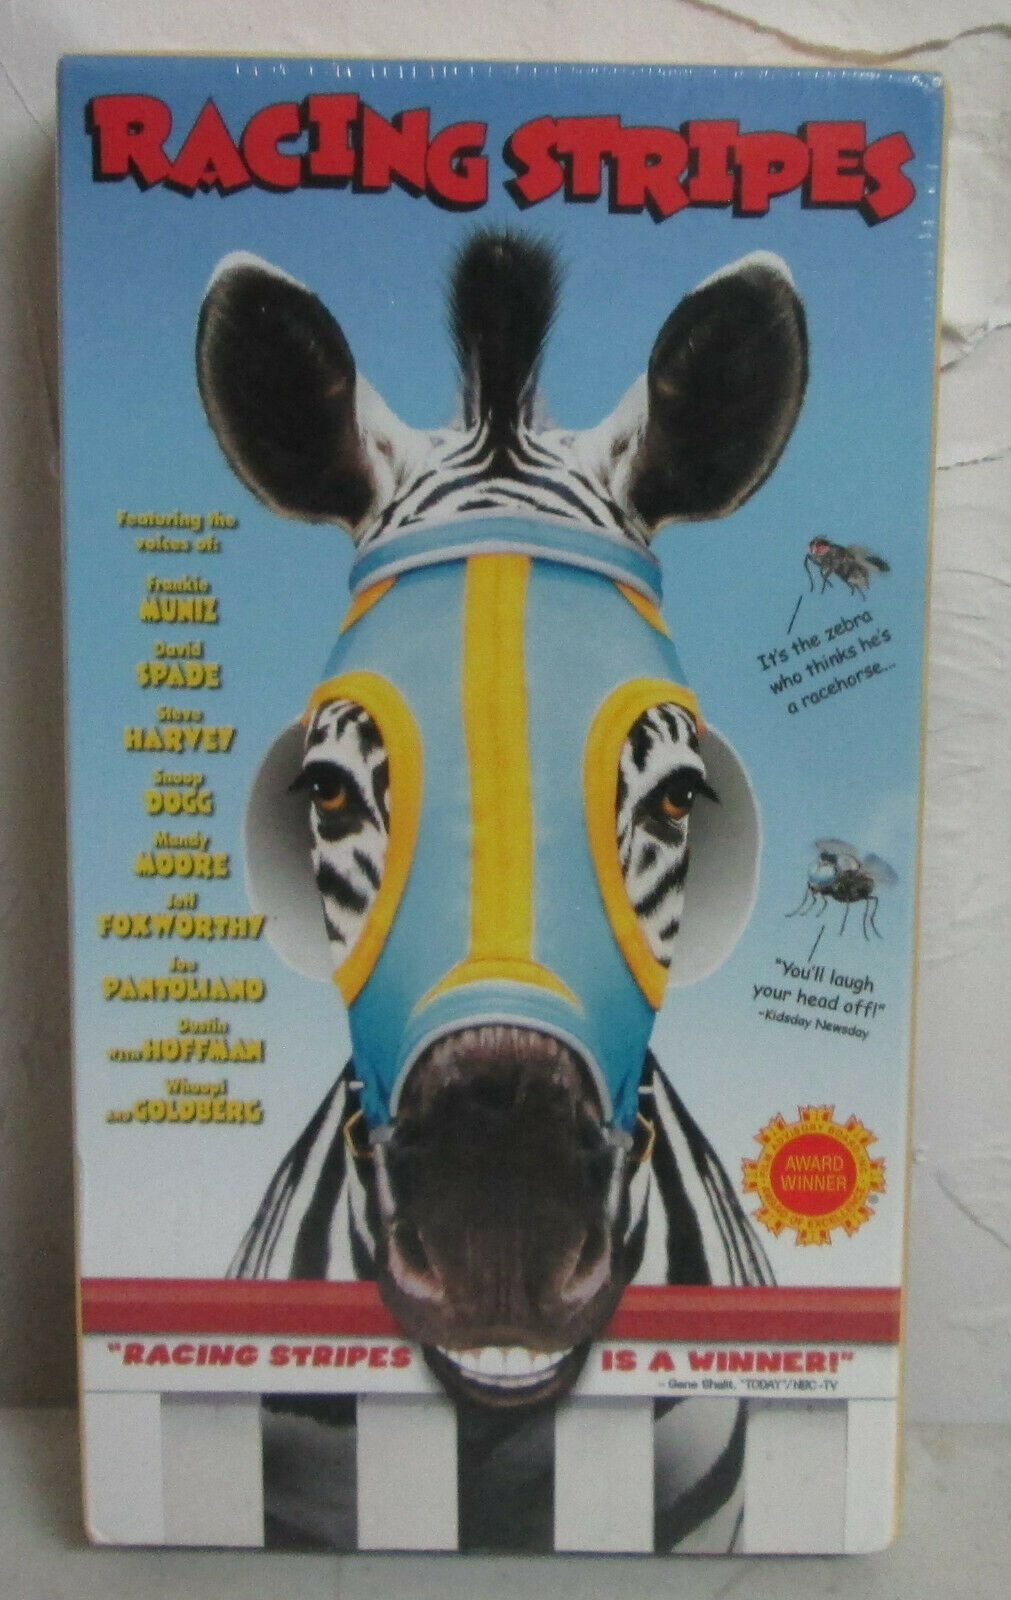 Racing Stripes (2005 VHS)